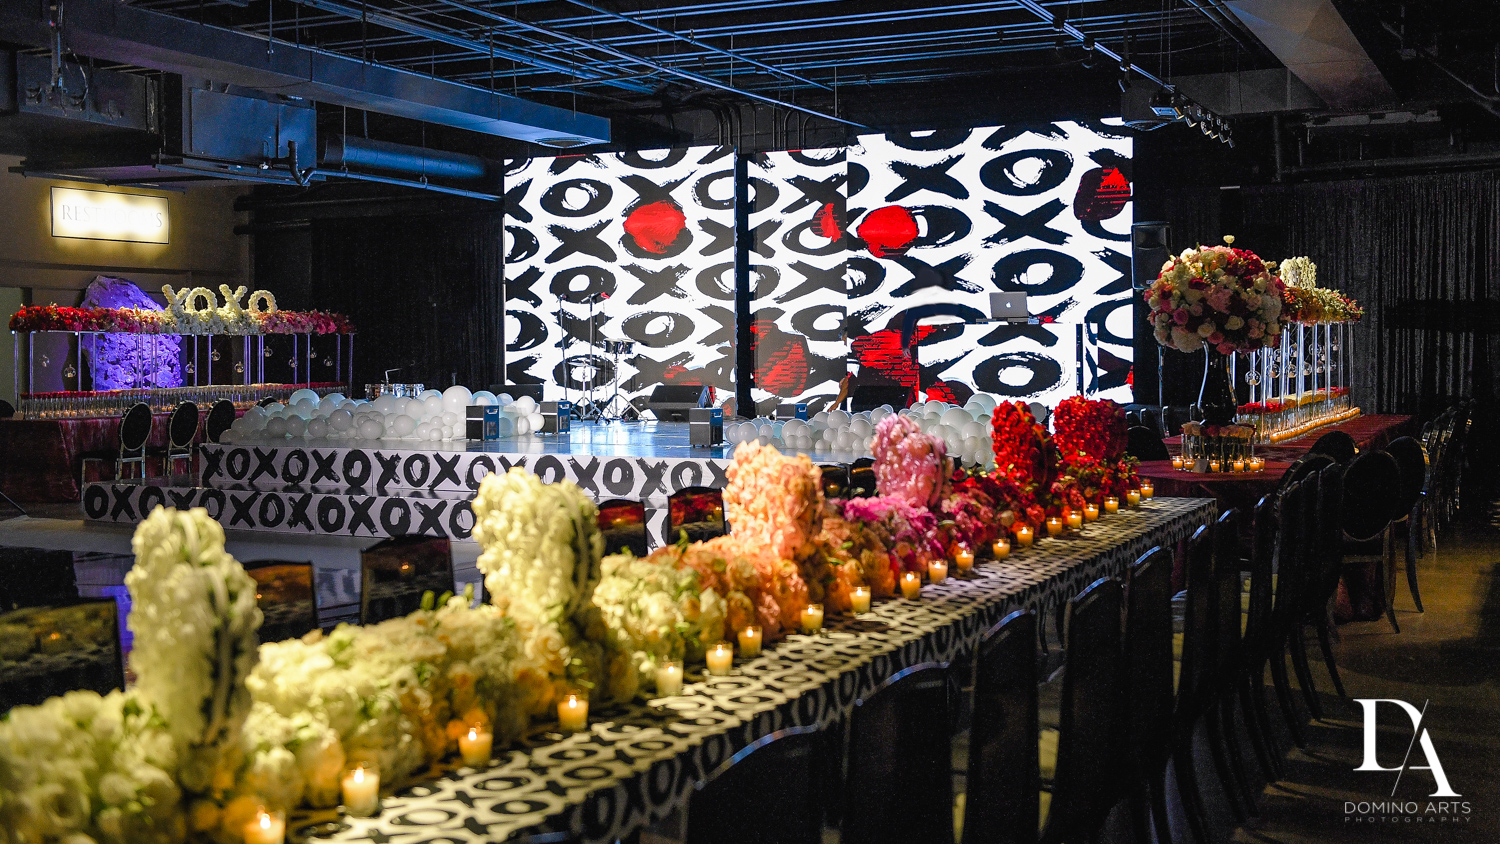 amazing rose decor at Fashion Theme Bat Mitzvah at Gallery of Amazing Things by Domino Arts Photography